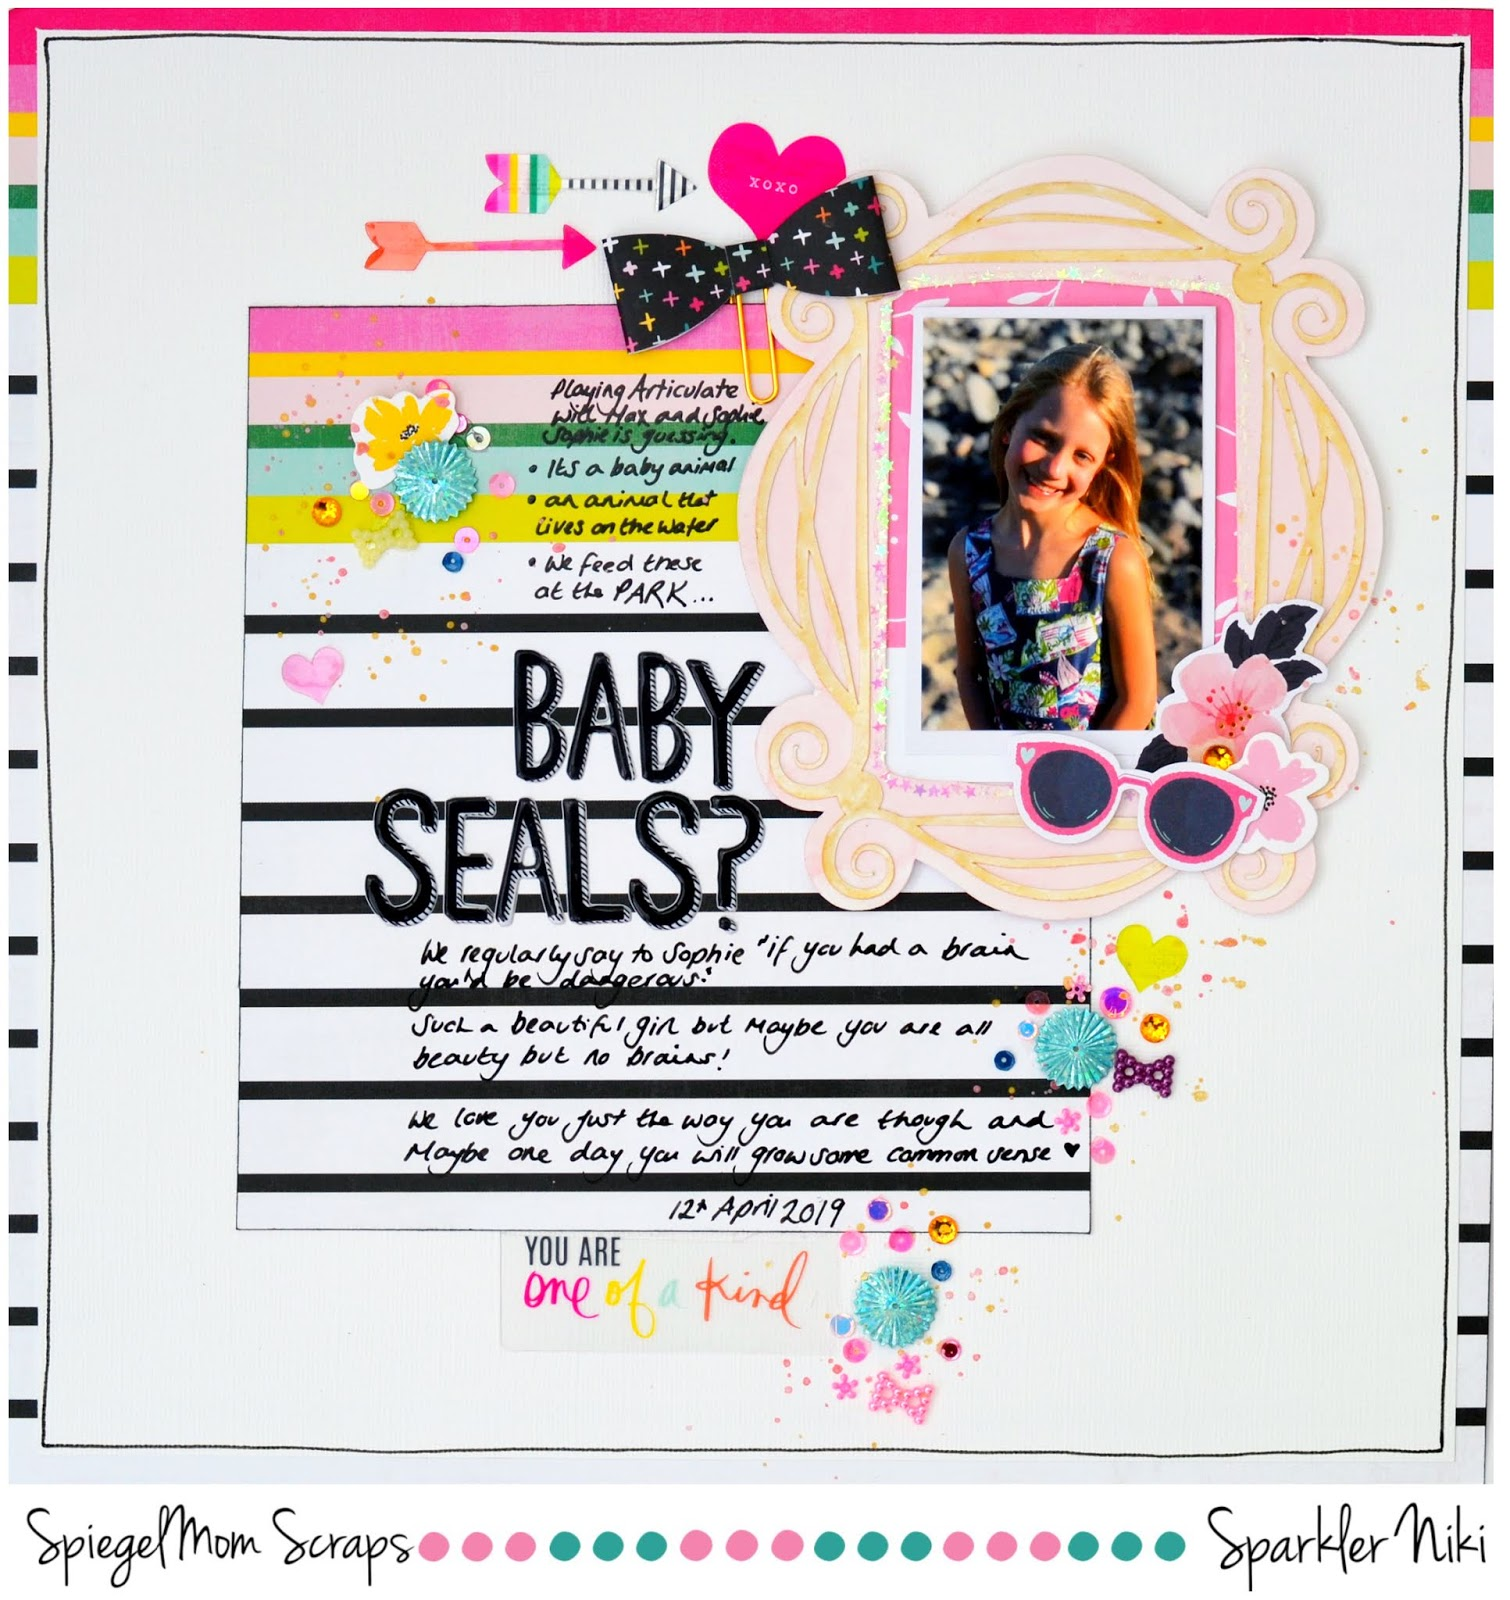 Hey There Im Up On The Spiegel Mom Scraps You Tube Channel Today With New A Layout And Process Video To Share Using Two Different Sequin Mixes From The